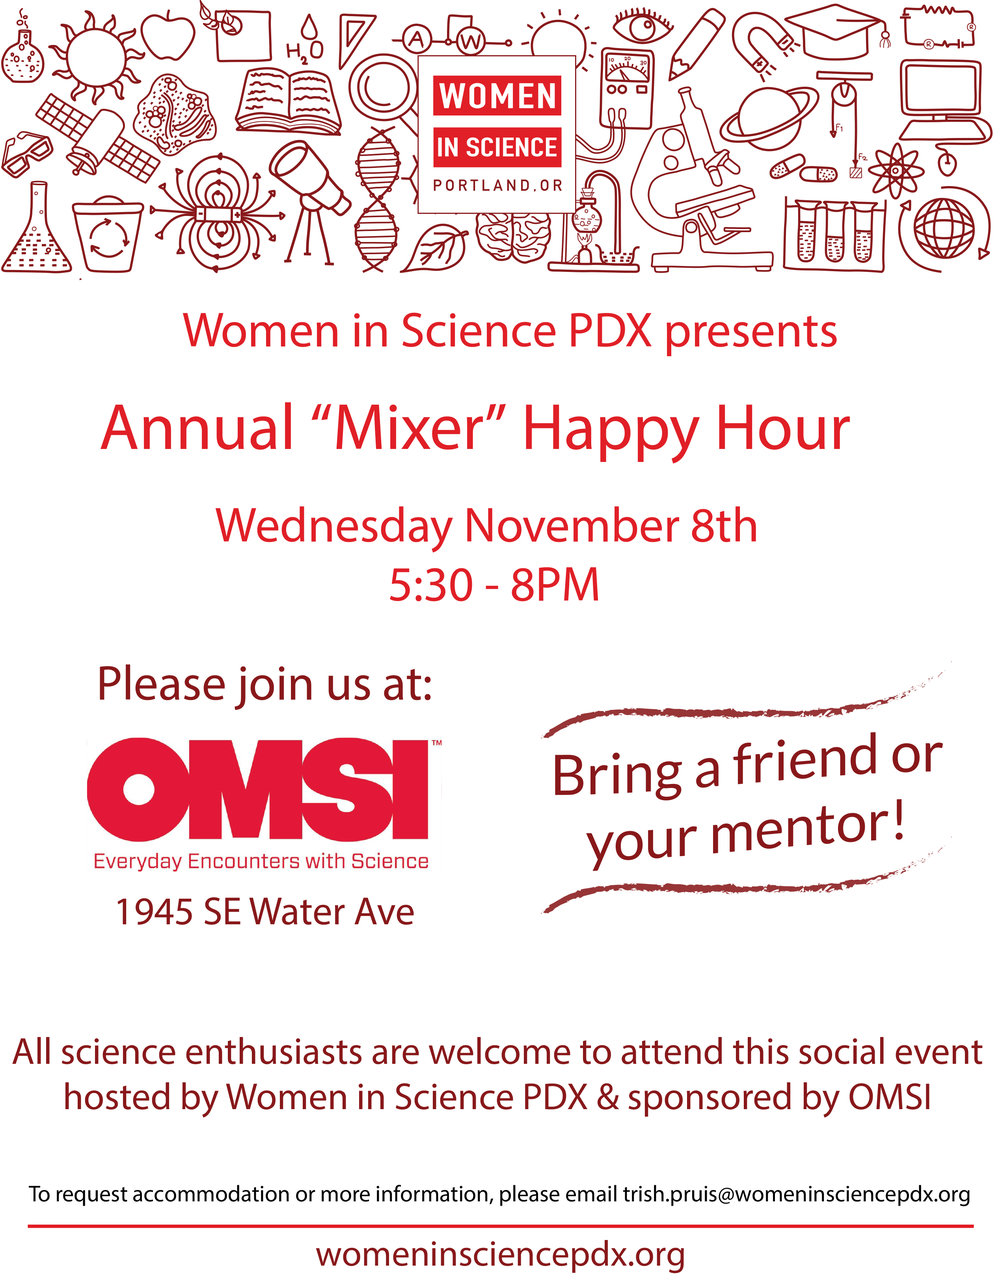 Women in Science PDX Annual Mixer 2017 11 08.jpg